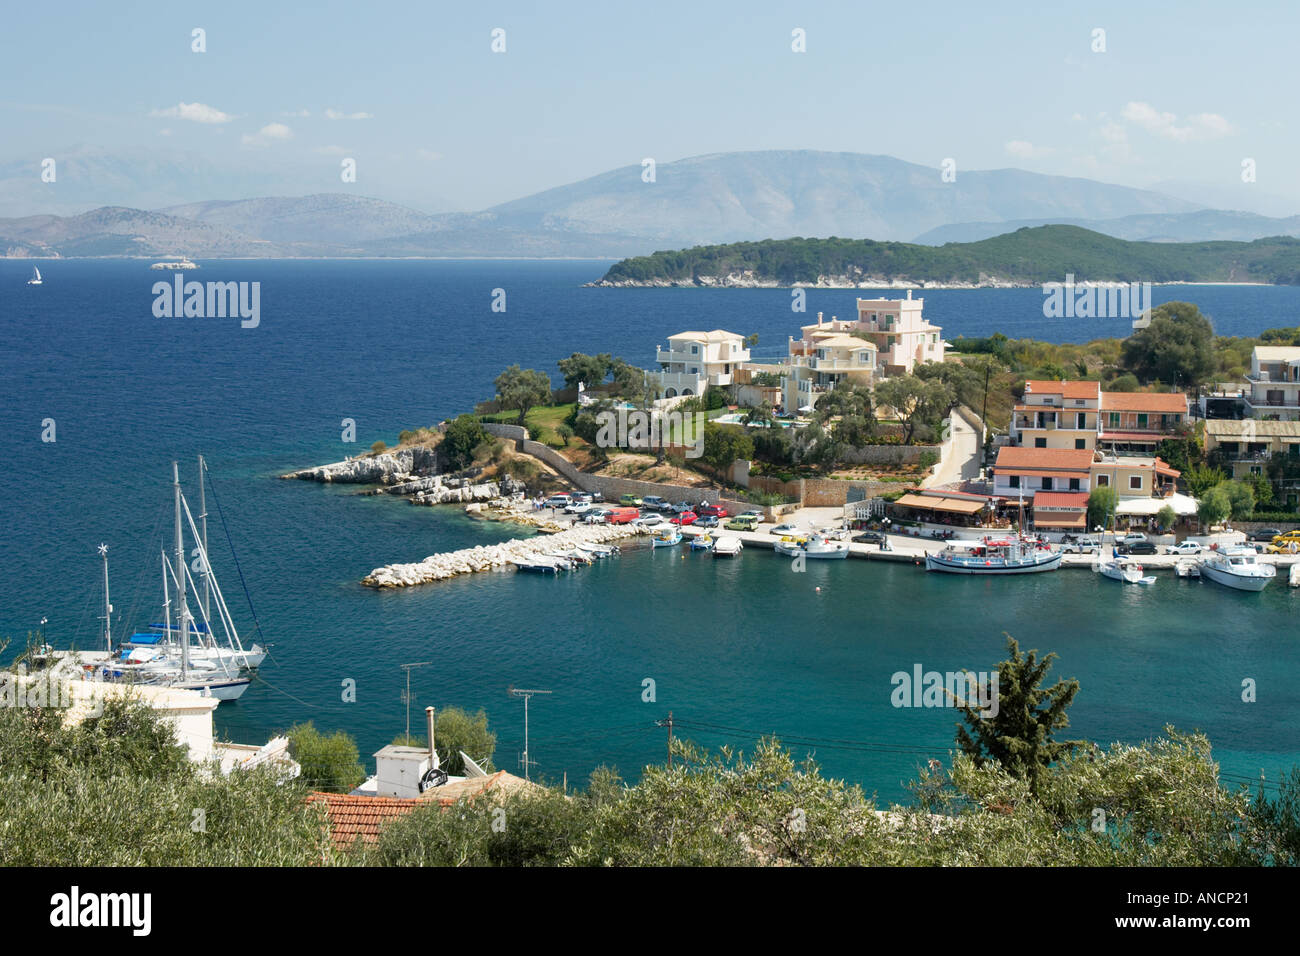 View over the town and harbour of Kassiopi from nearby Byzantine fortress. Corfu island, Greece. - Stock Image